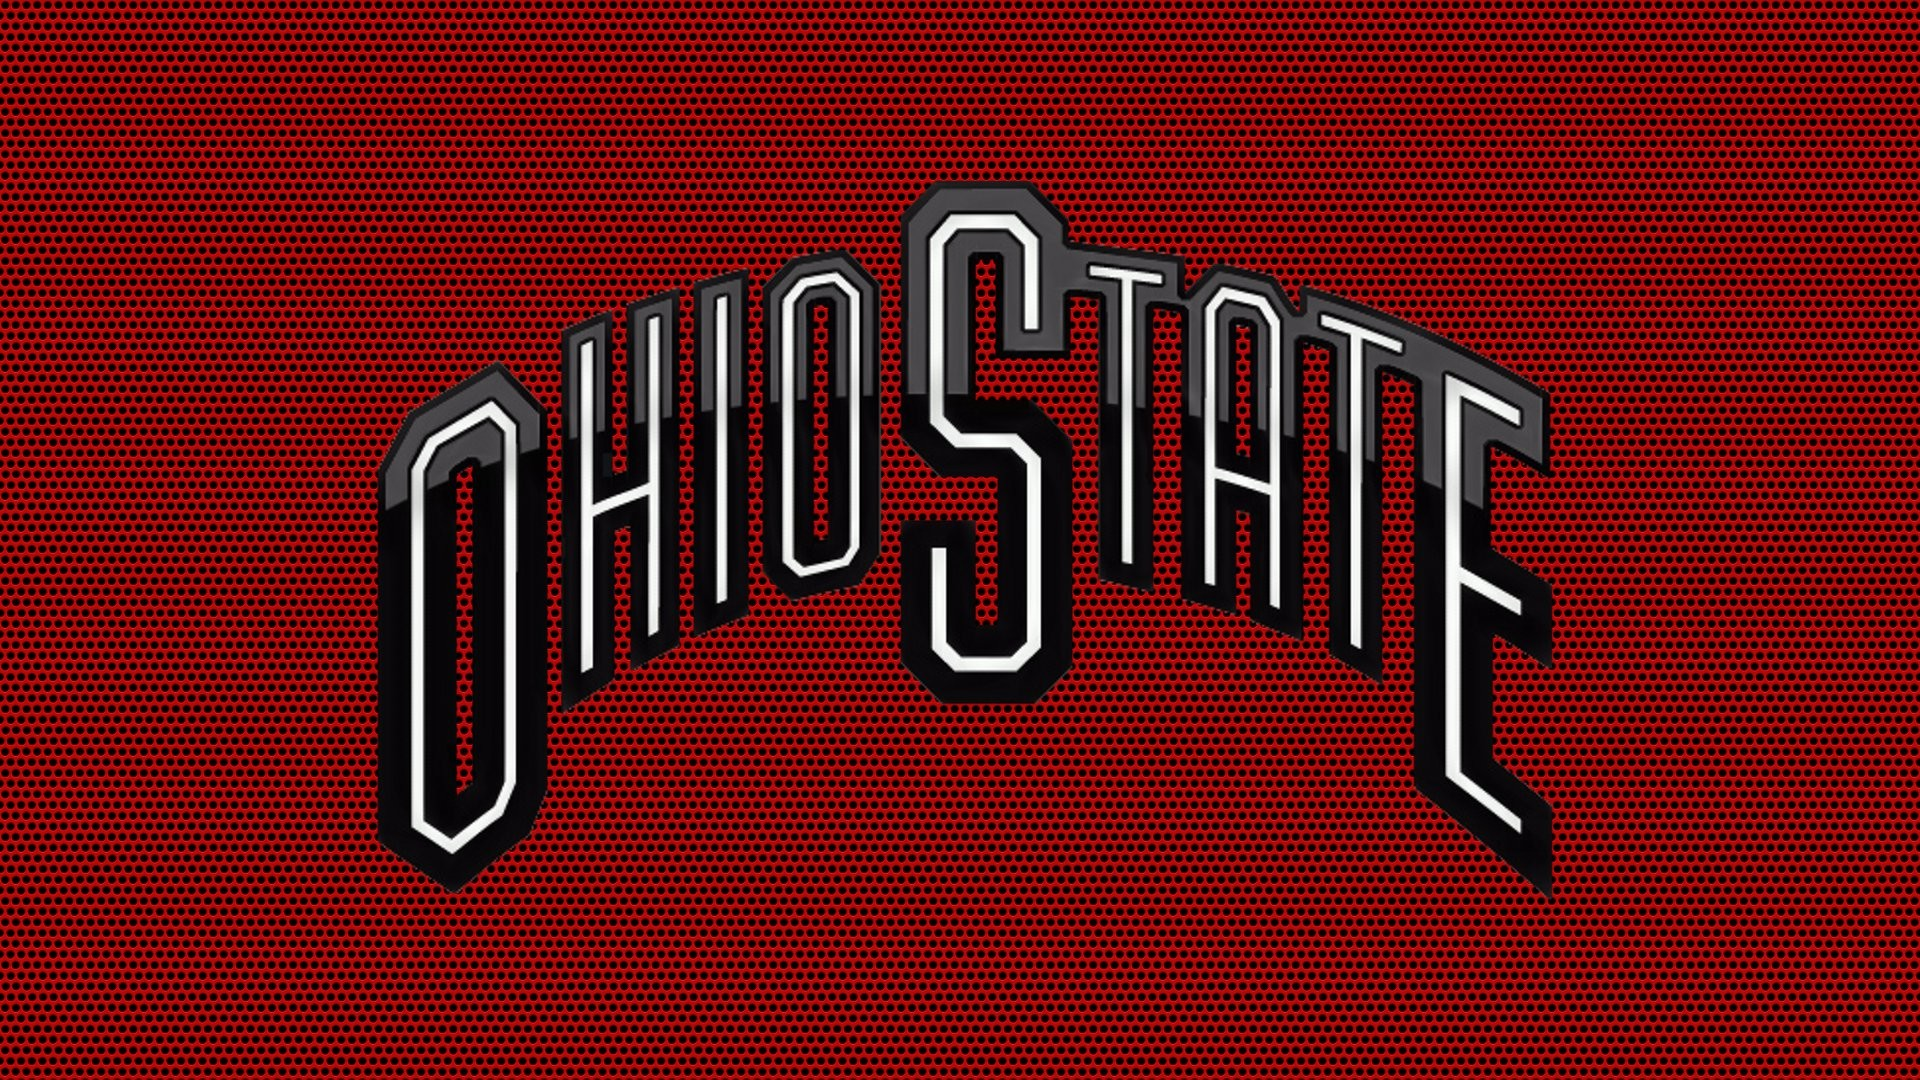 1920x1080 OSU Wallpaper 405 - Ohio State Football Wallpaper (30087896 .